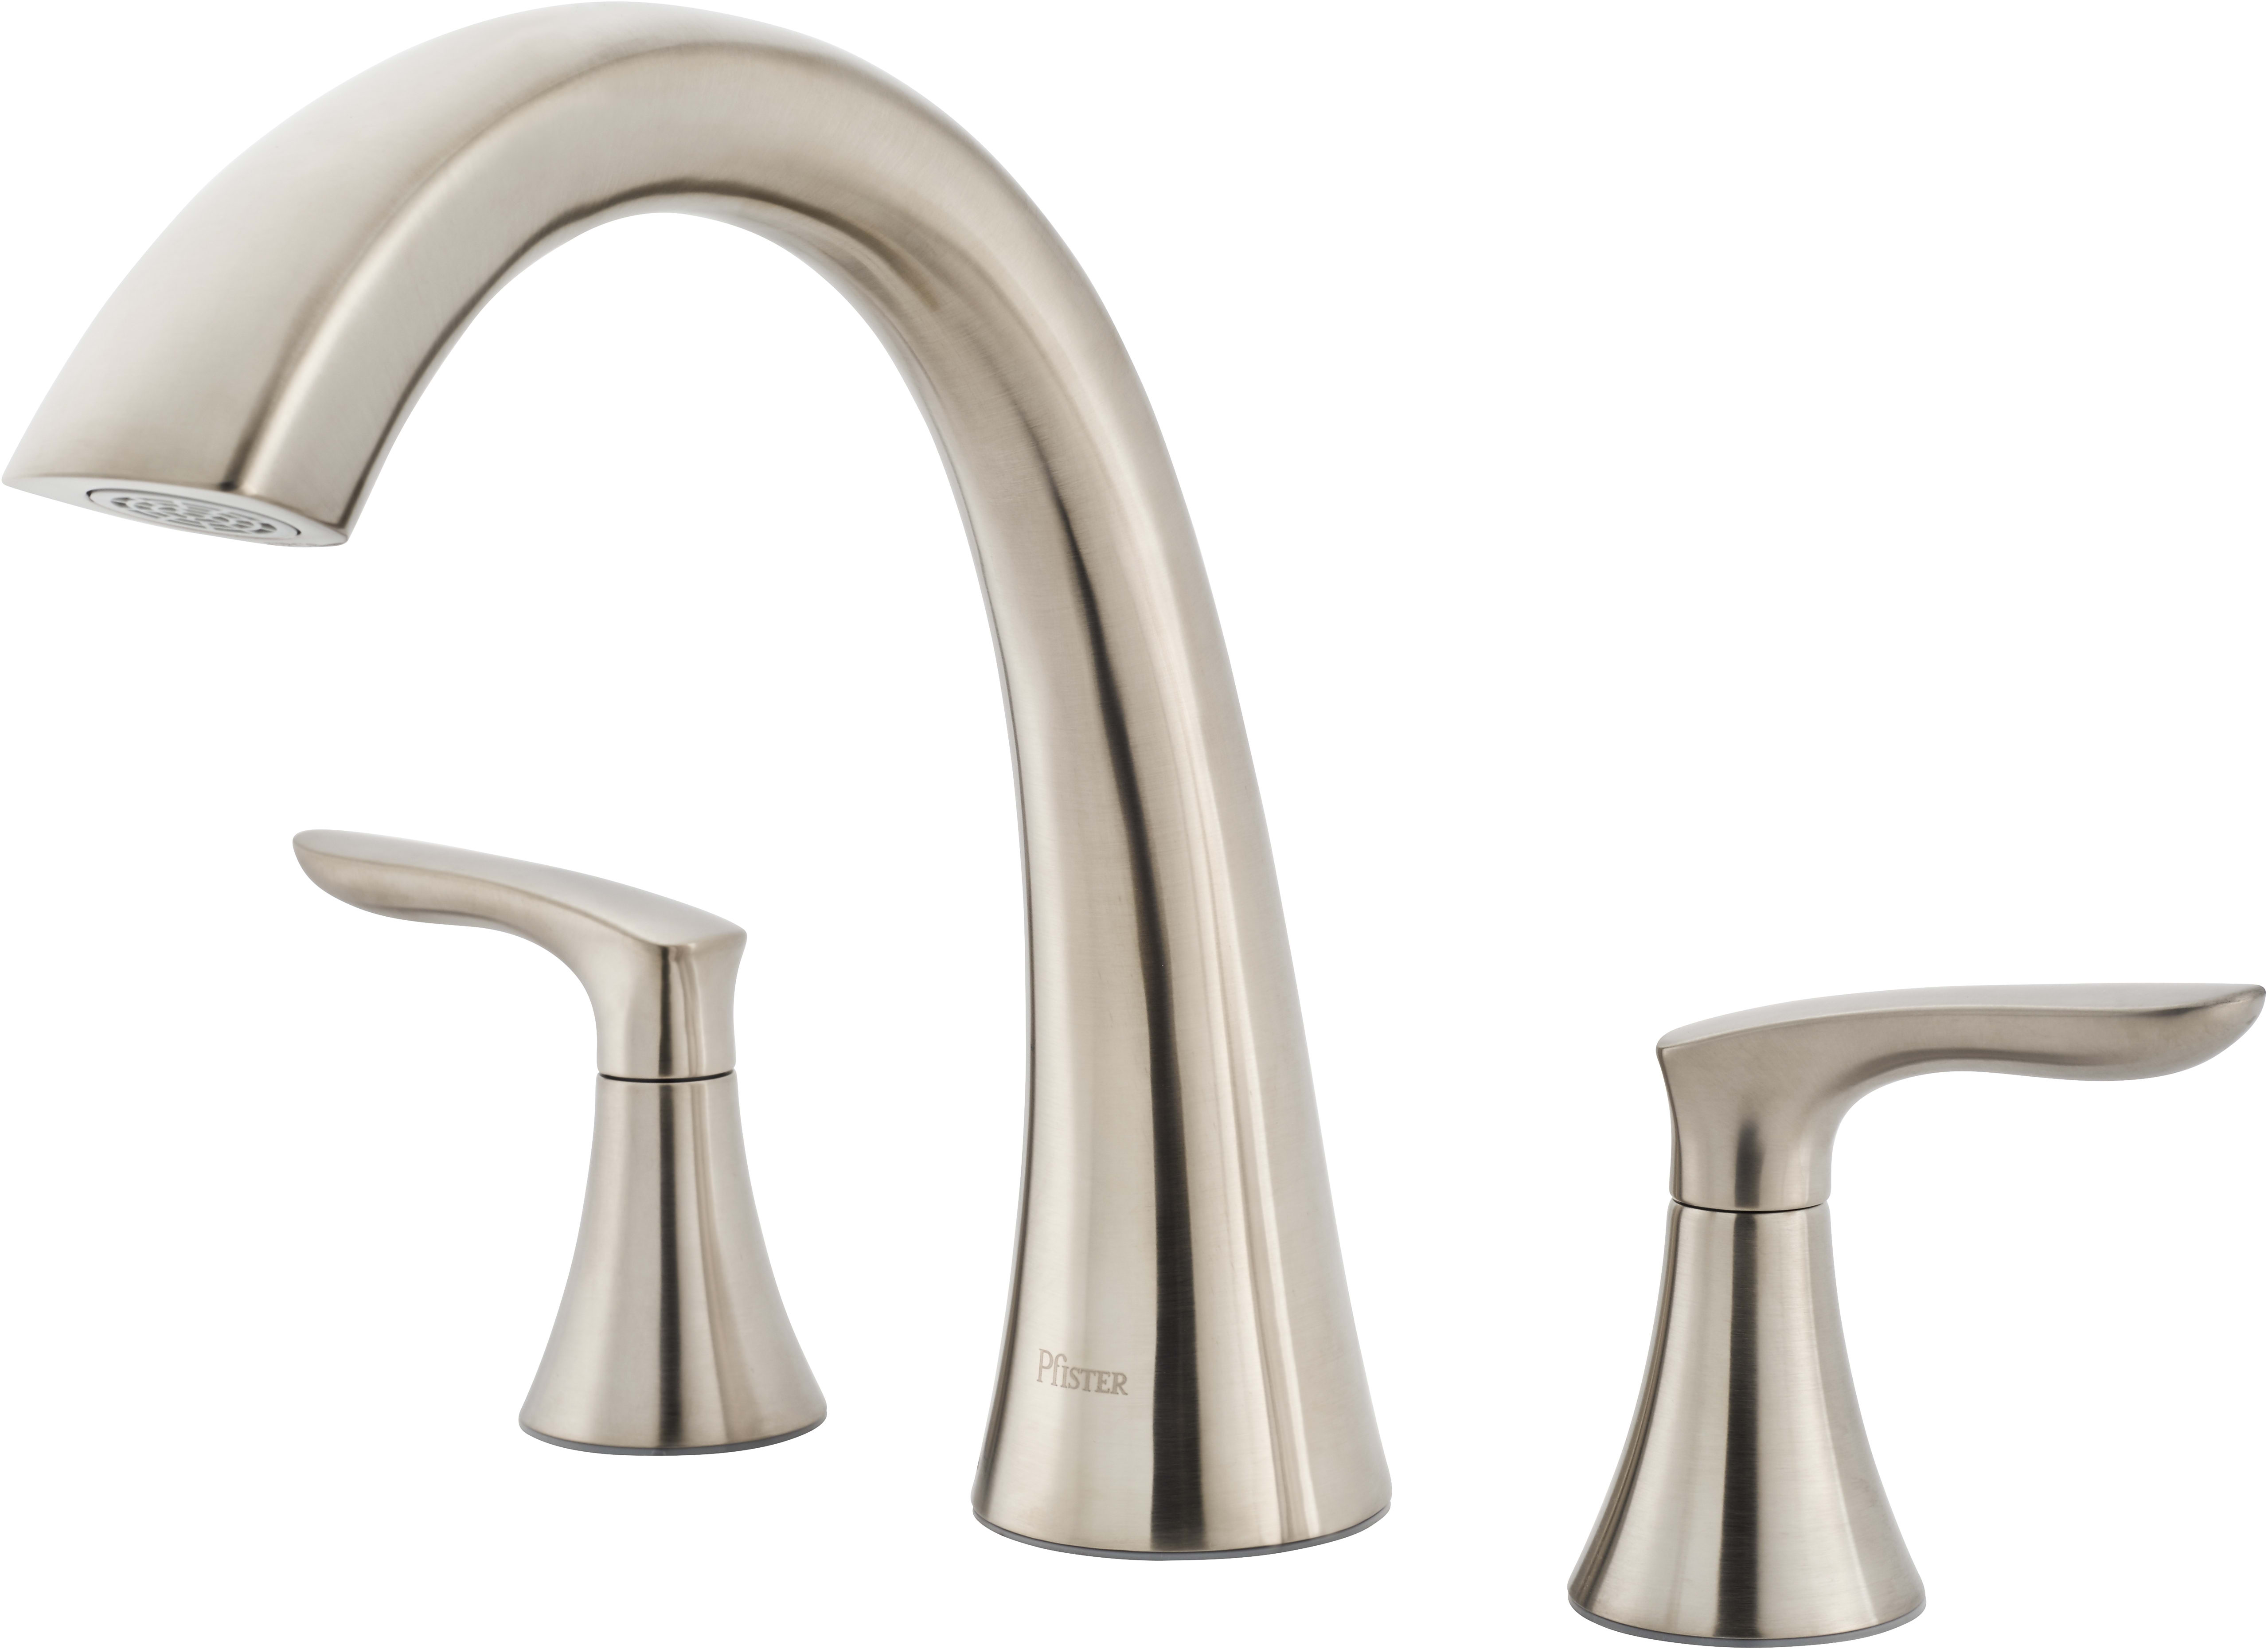 parts awesome captivating tub chic kitchen photos shower for pfister faucet com single kohler htsrec price of repair replacement unique handle